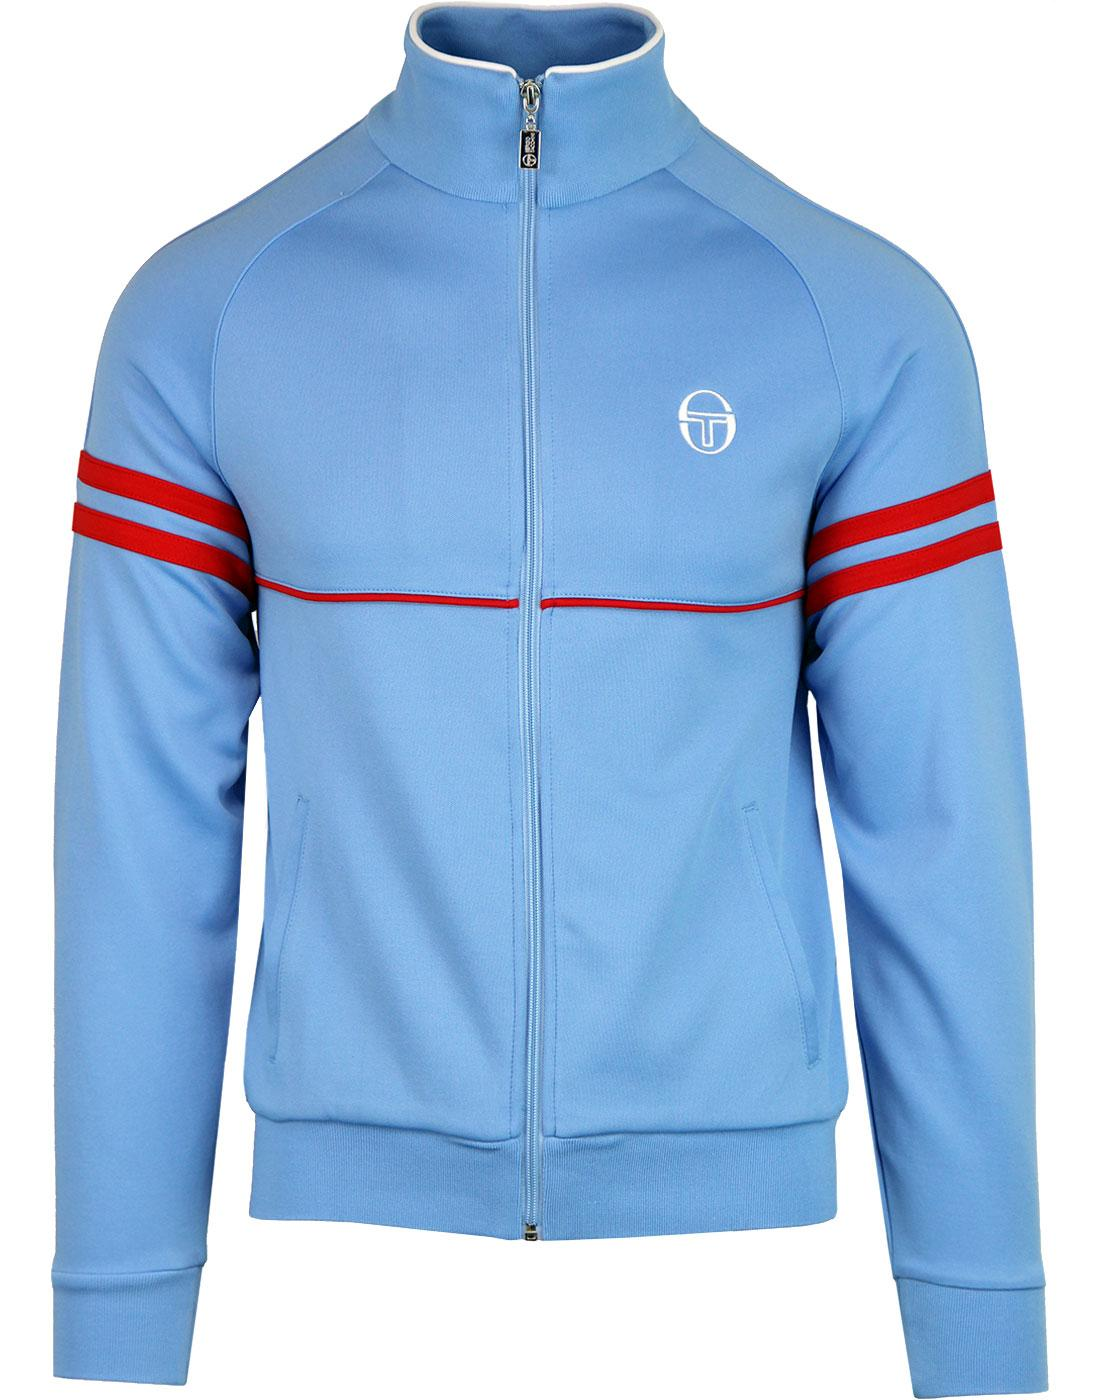 Orion SERGIO TACCHINI 80's Funnel Neck Track Top